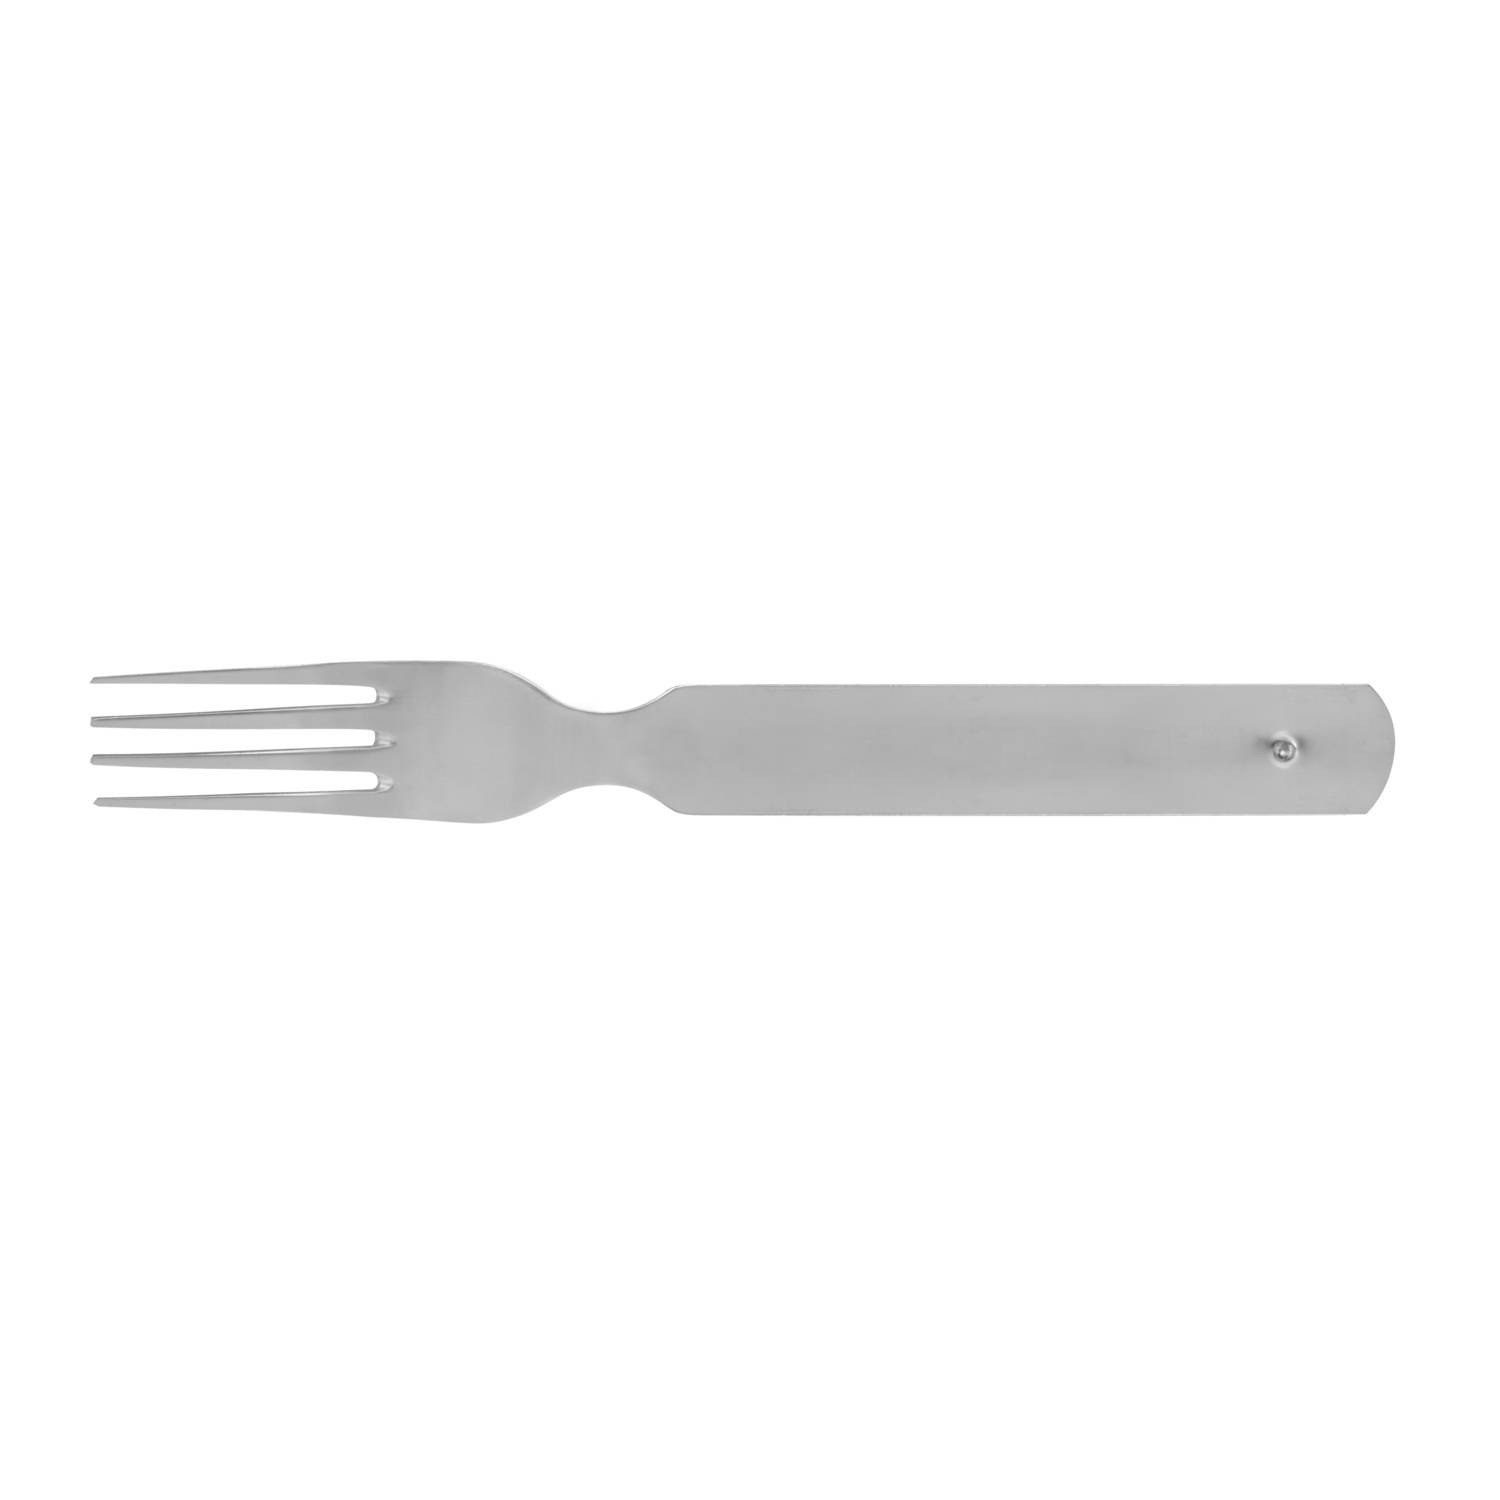 KFS SET BW – STAINLESS STEEL